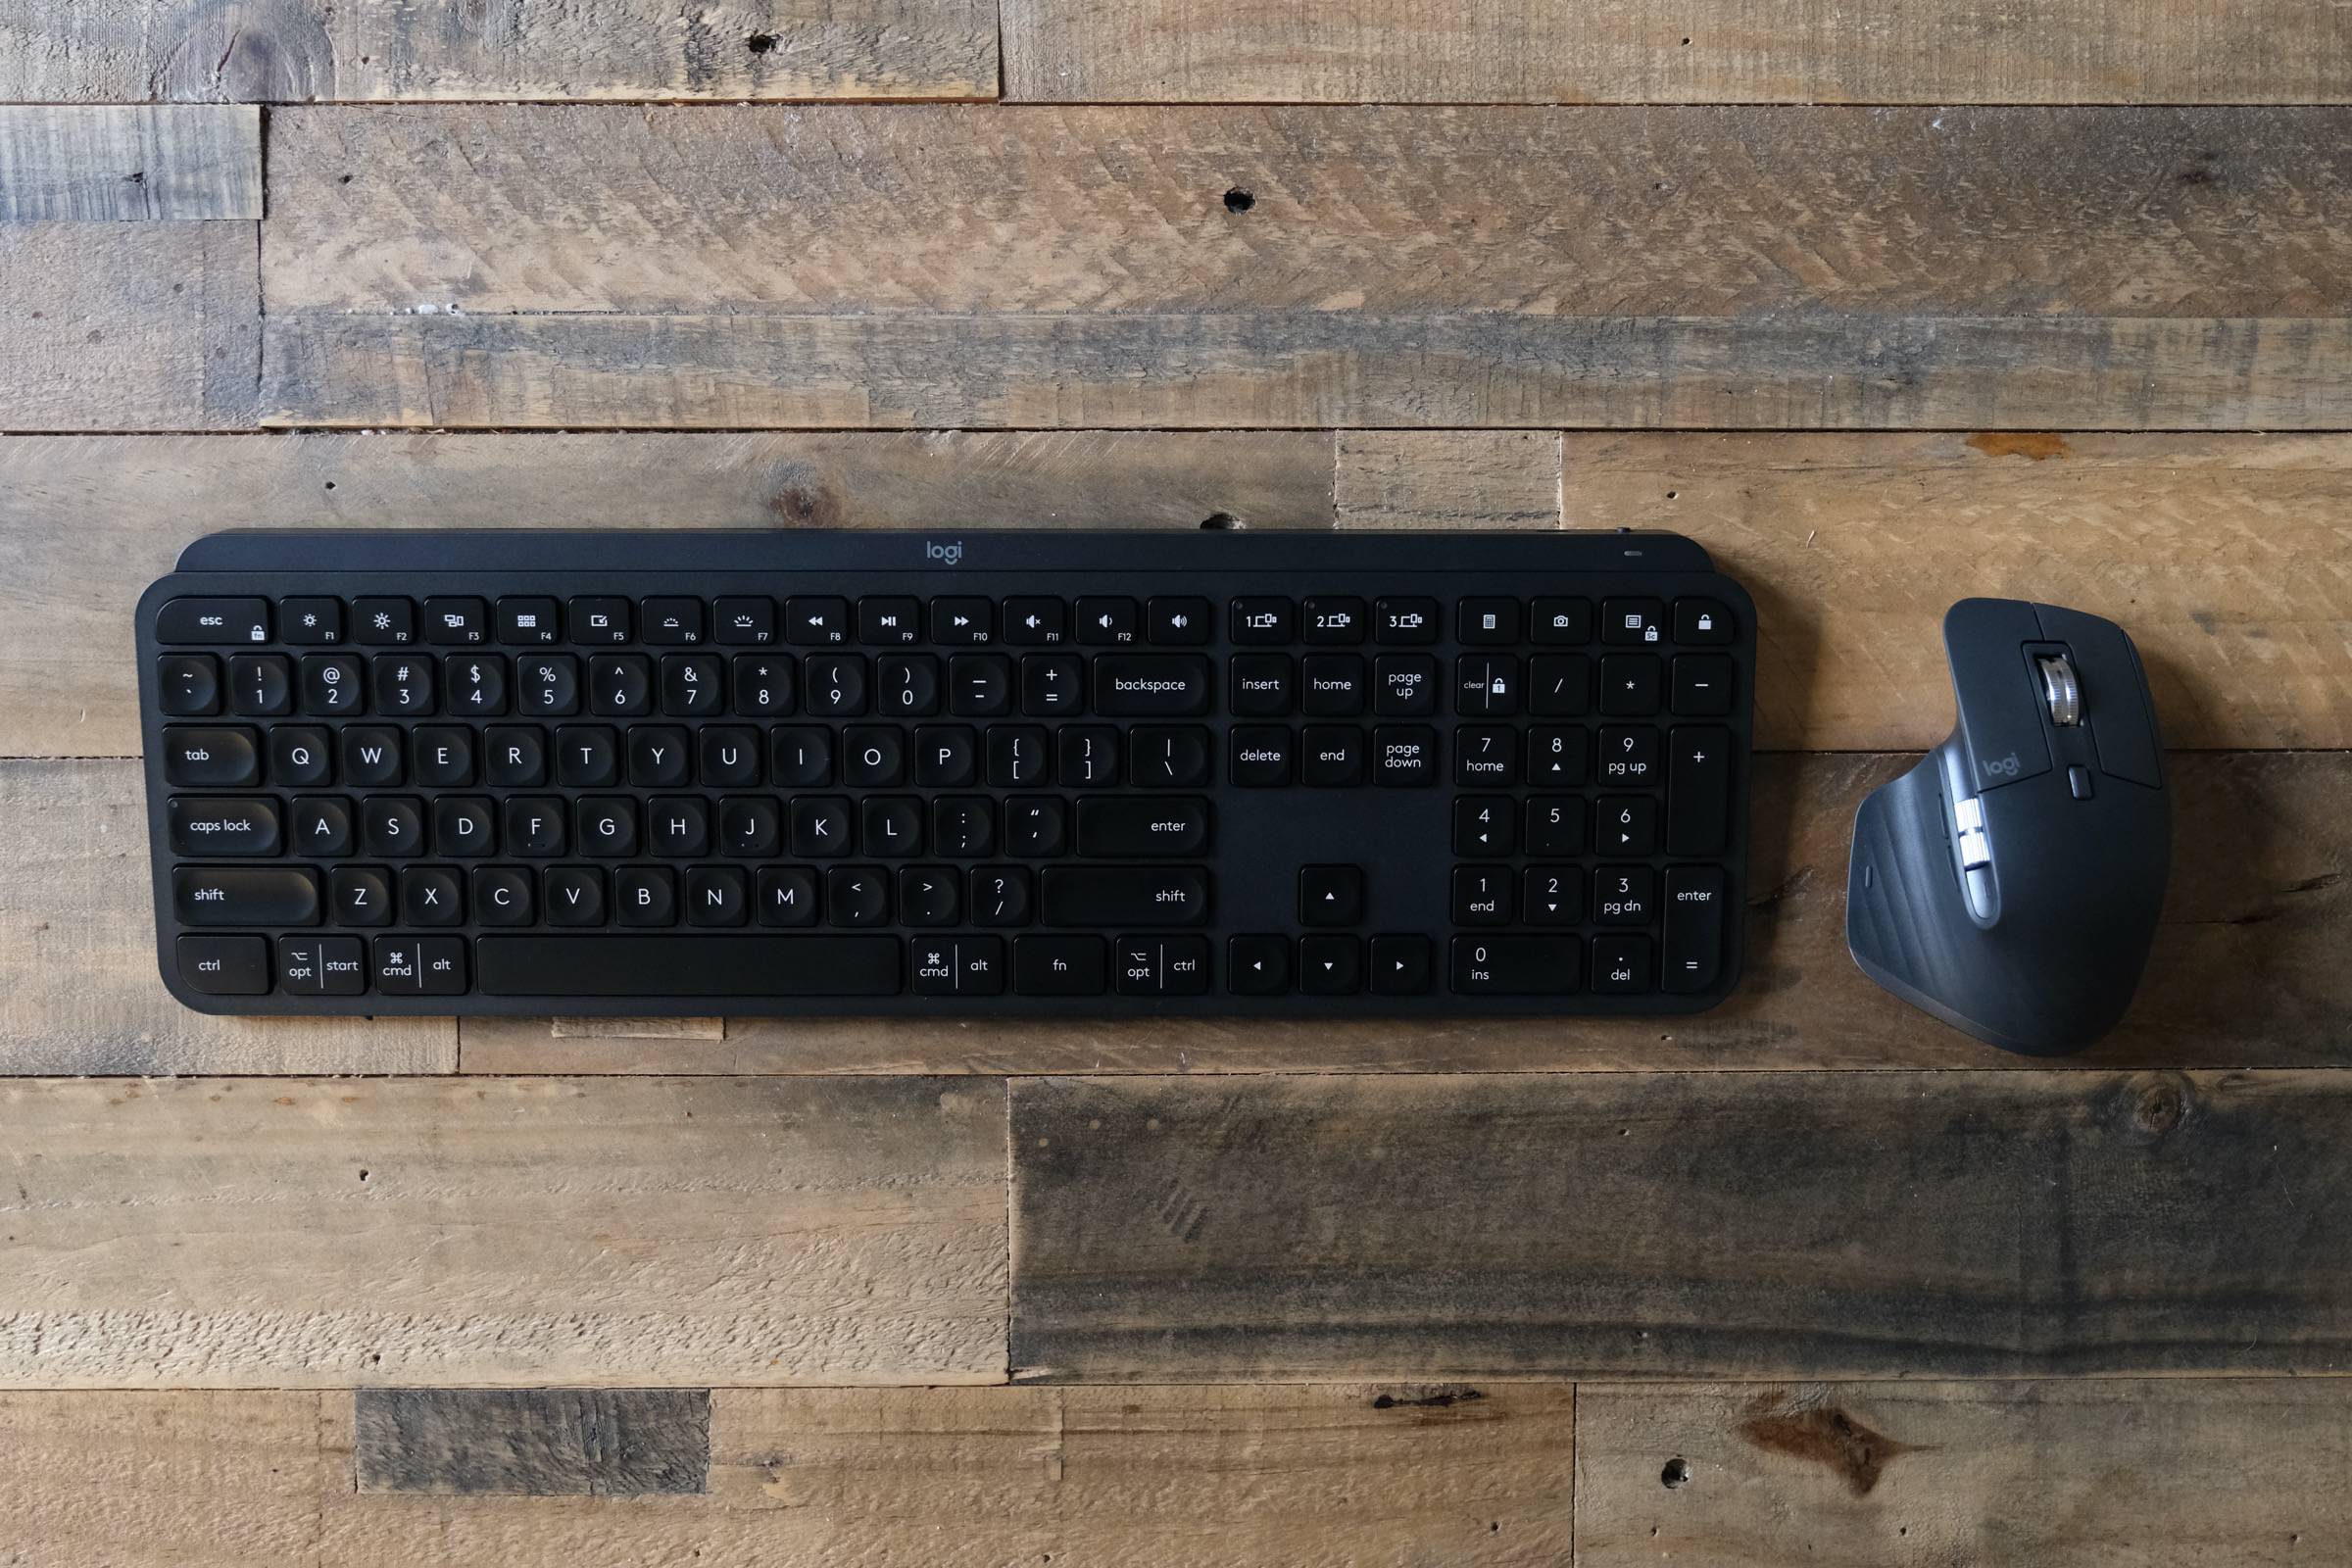 Logitech S Mx Master 3 Mouse And Mx Keys Keyboard Should Be Your